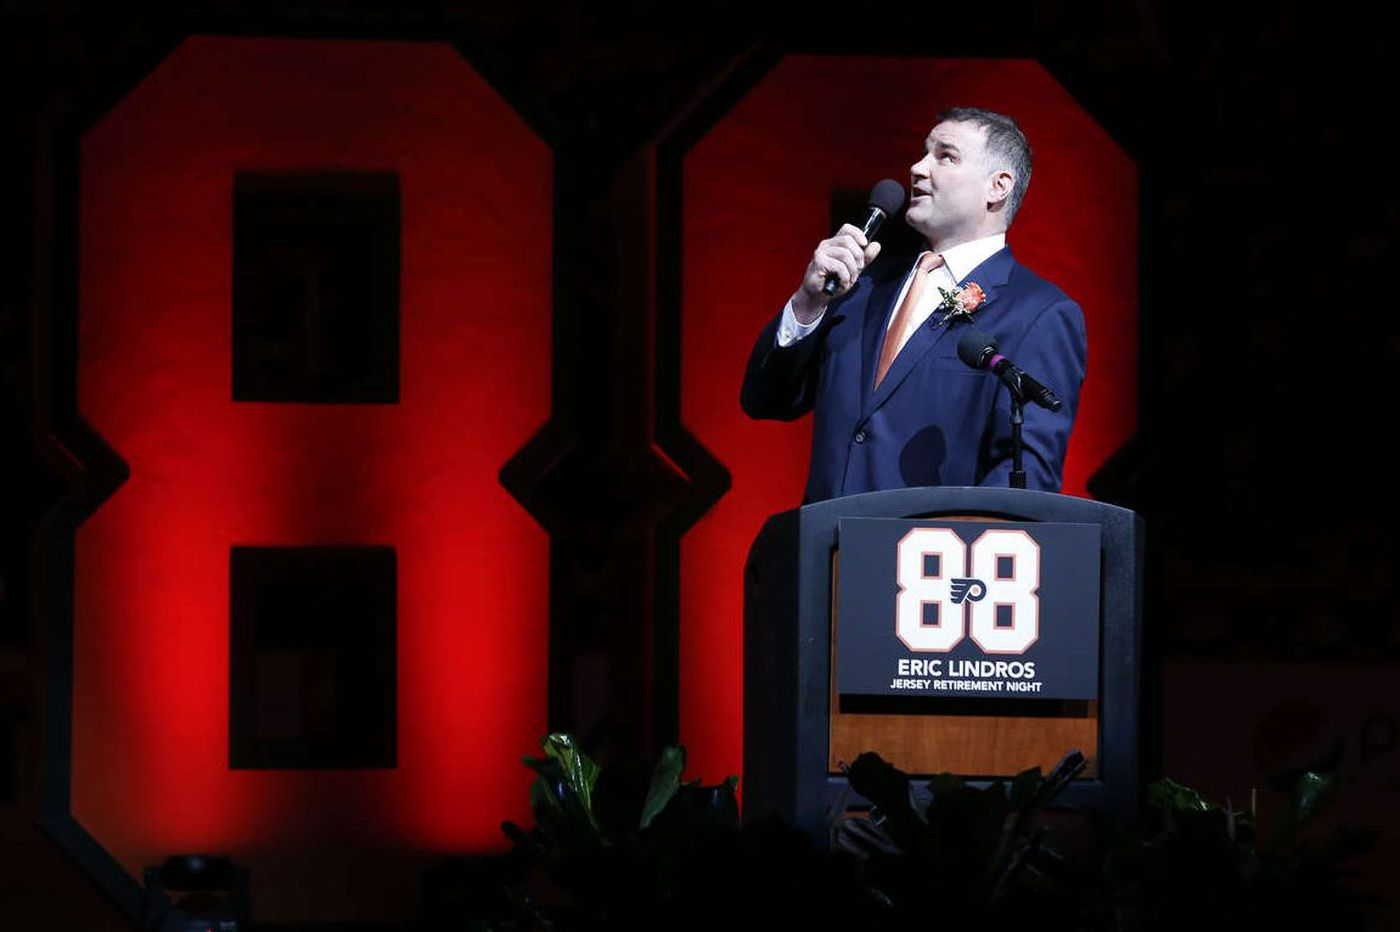 Eric Lindros gets emotional reception from fans as No. 88 is retired